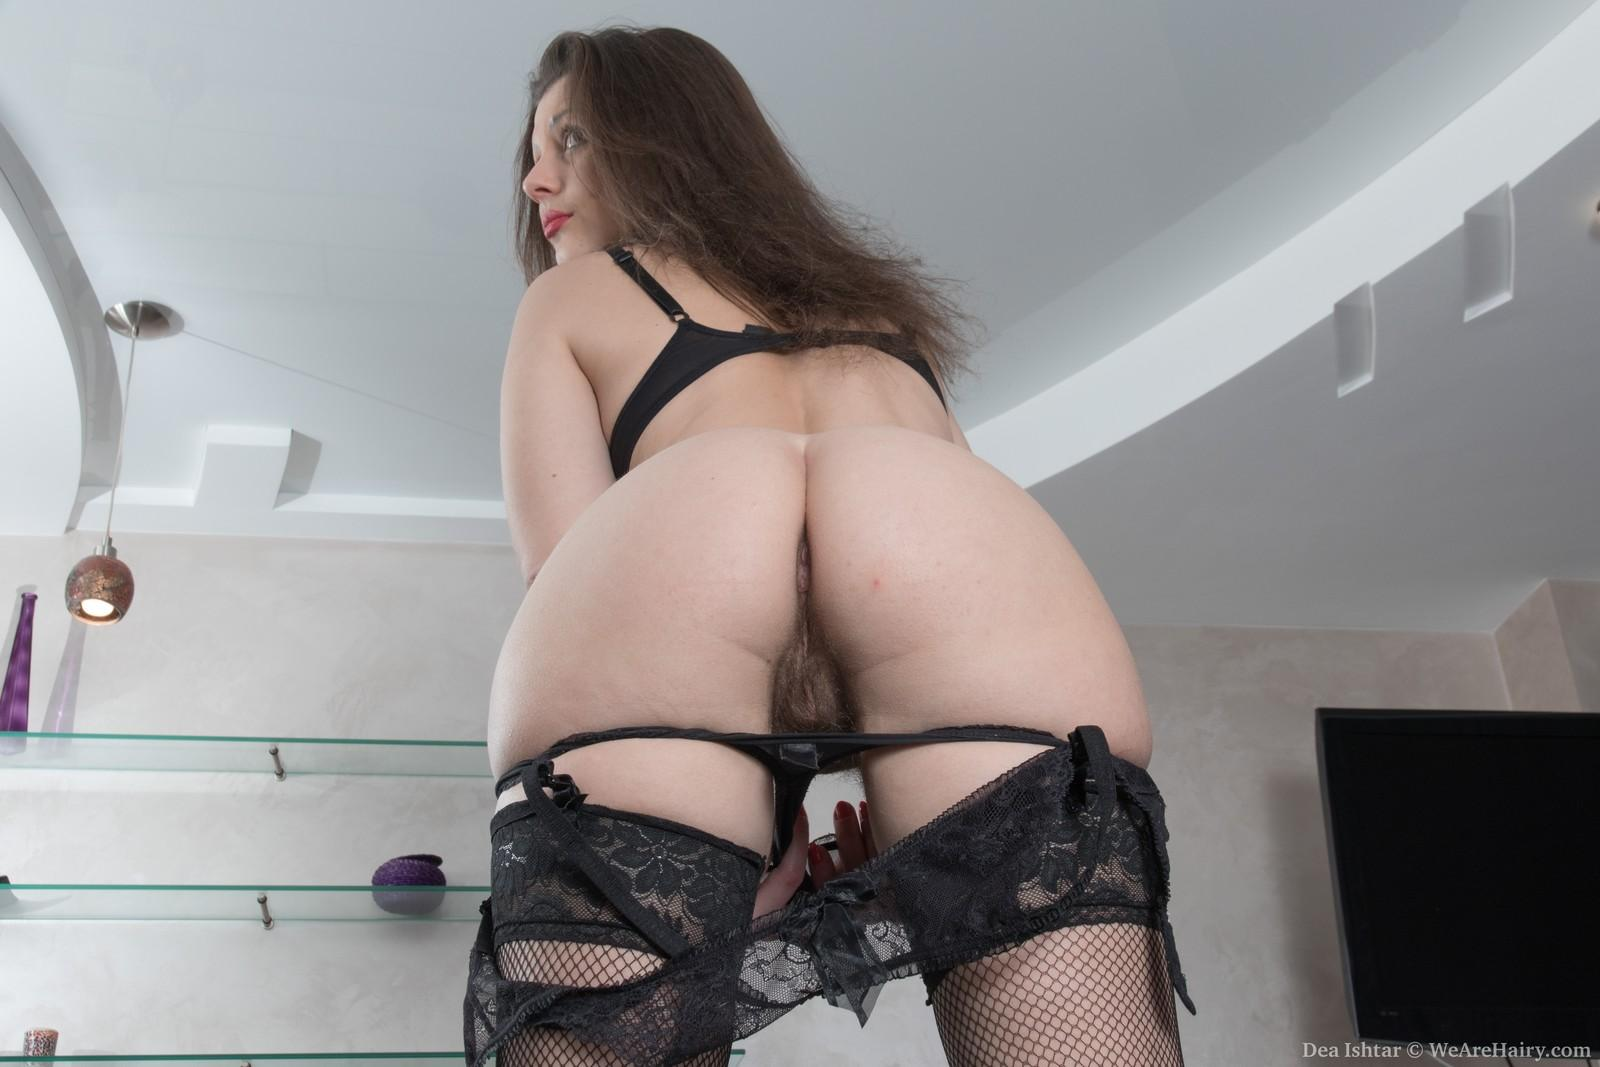 European black-haired amateur Dea Ishtar opening up hairy vag in hose and high-heels